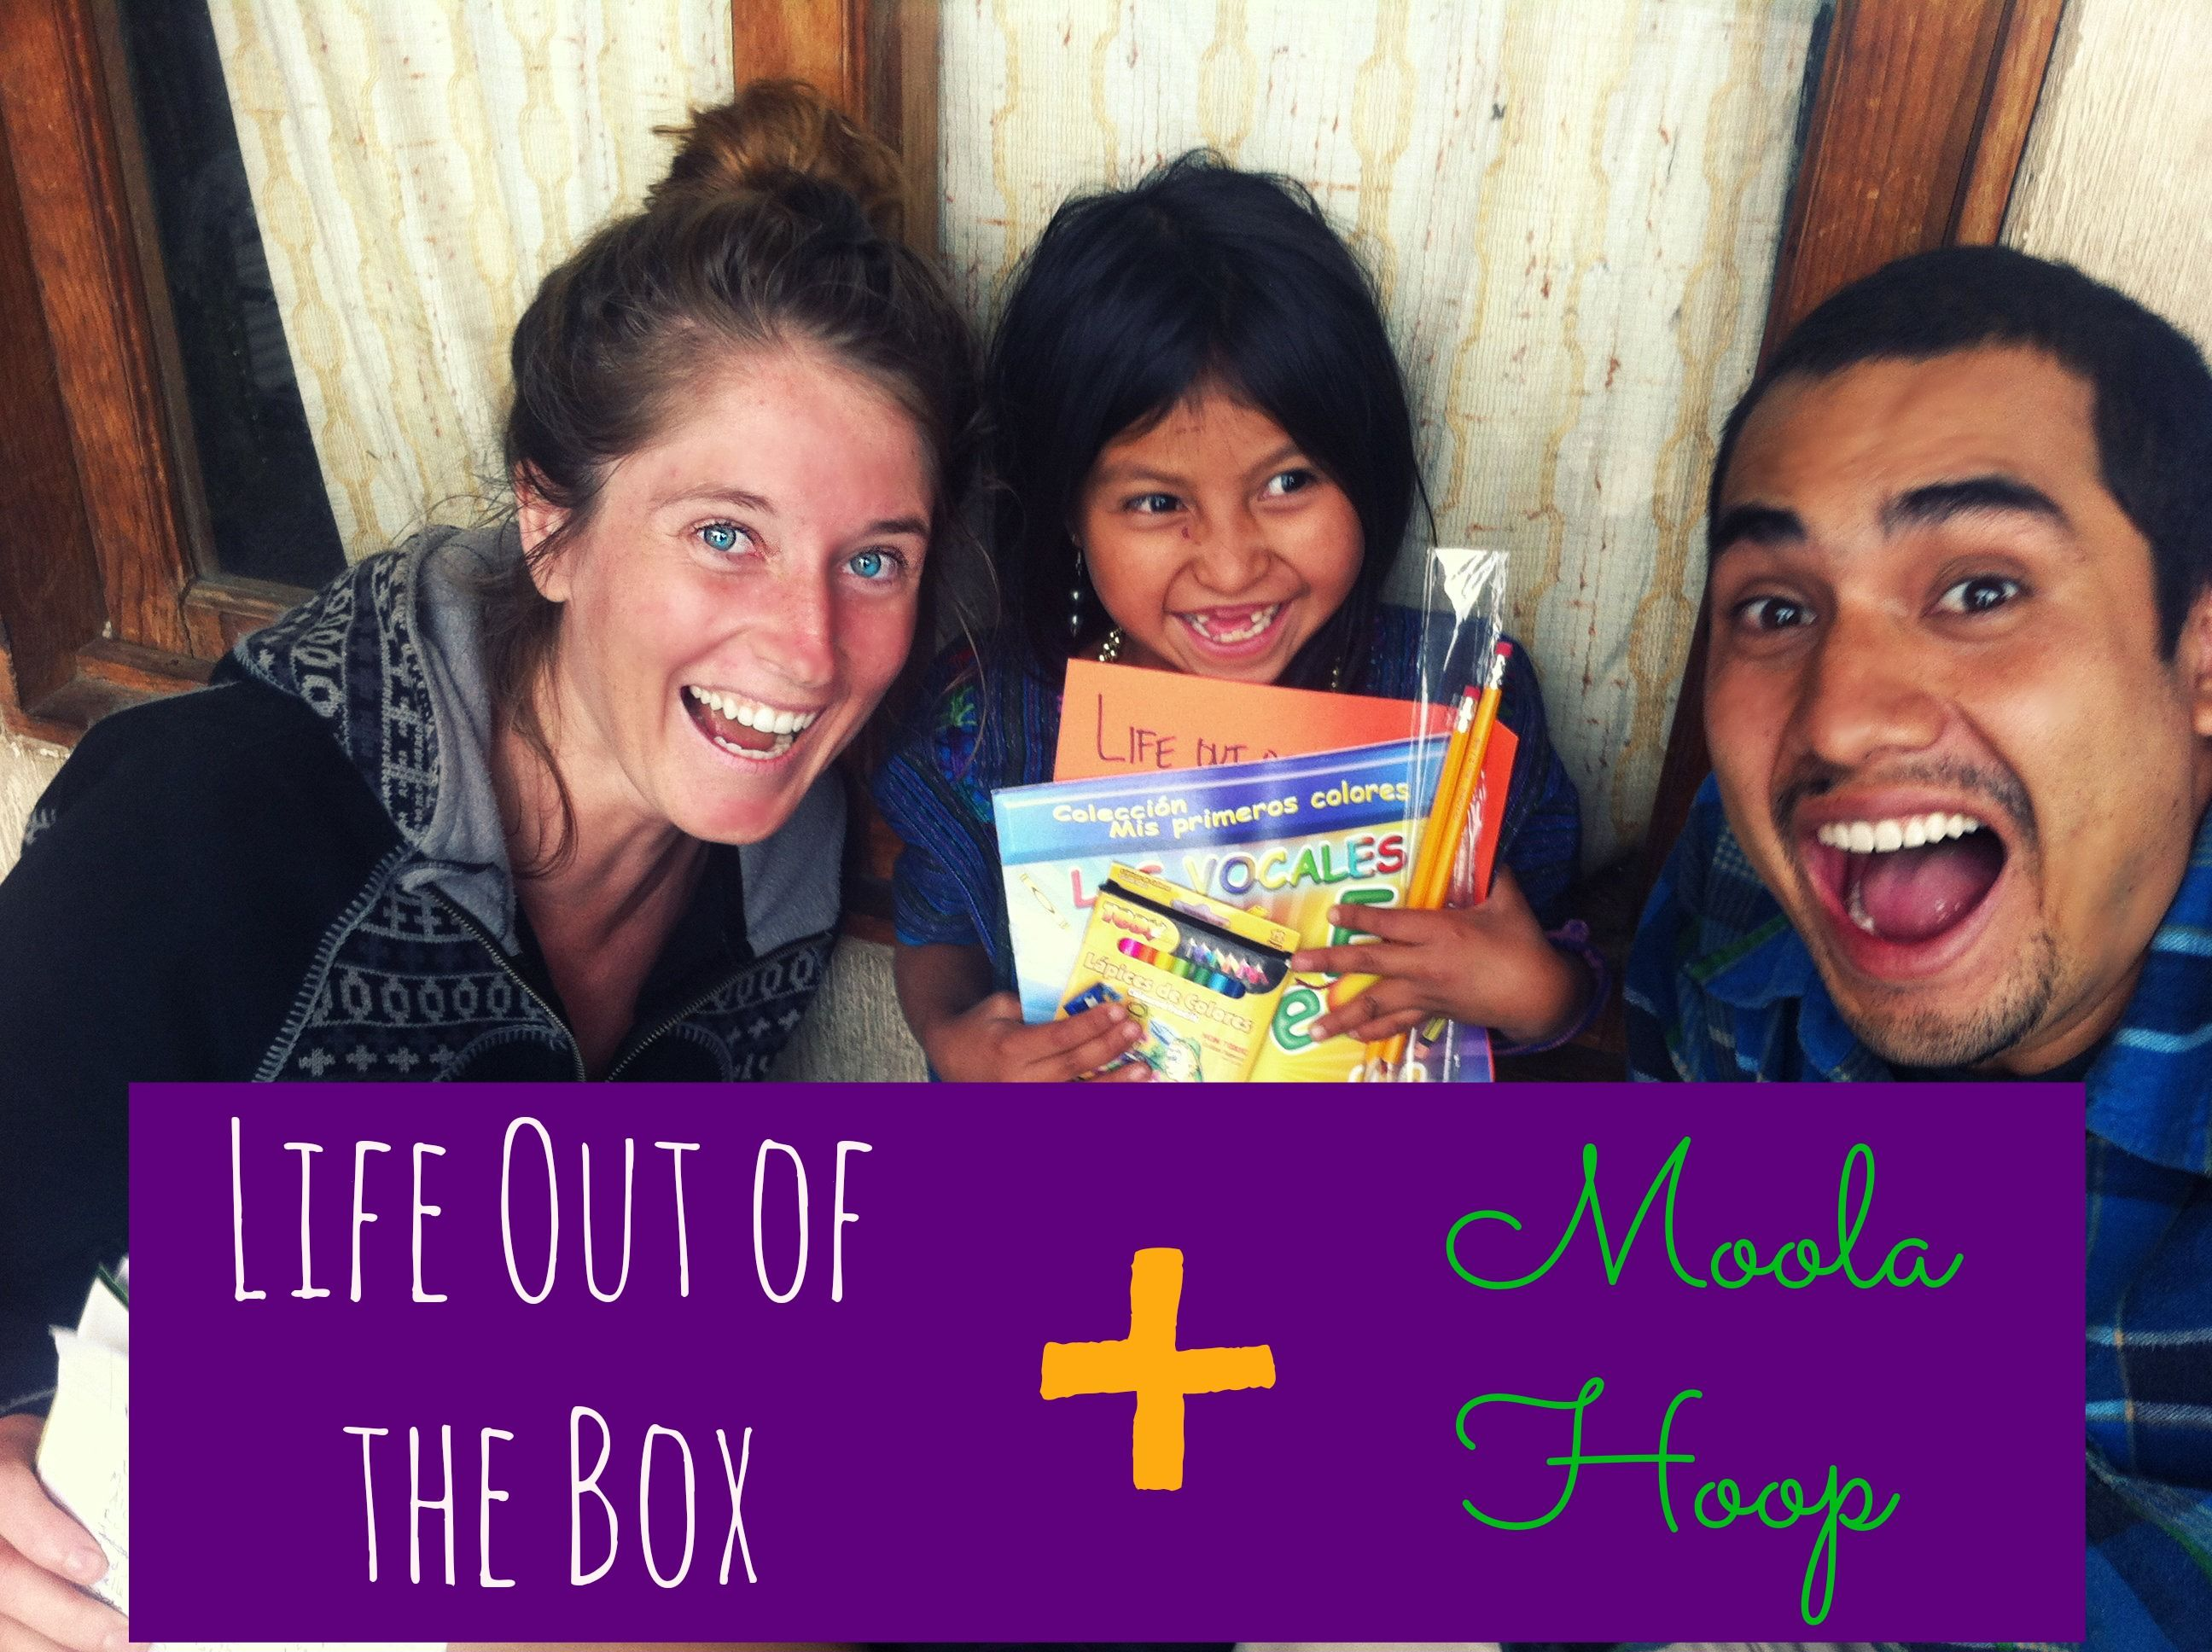 Life Out of the Box is a great organization helping kids in Central America. Check them out at www.moola-hoop.com and help them out.